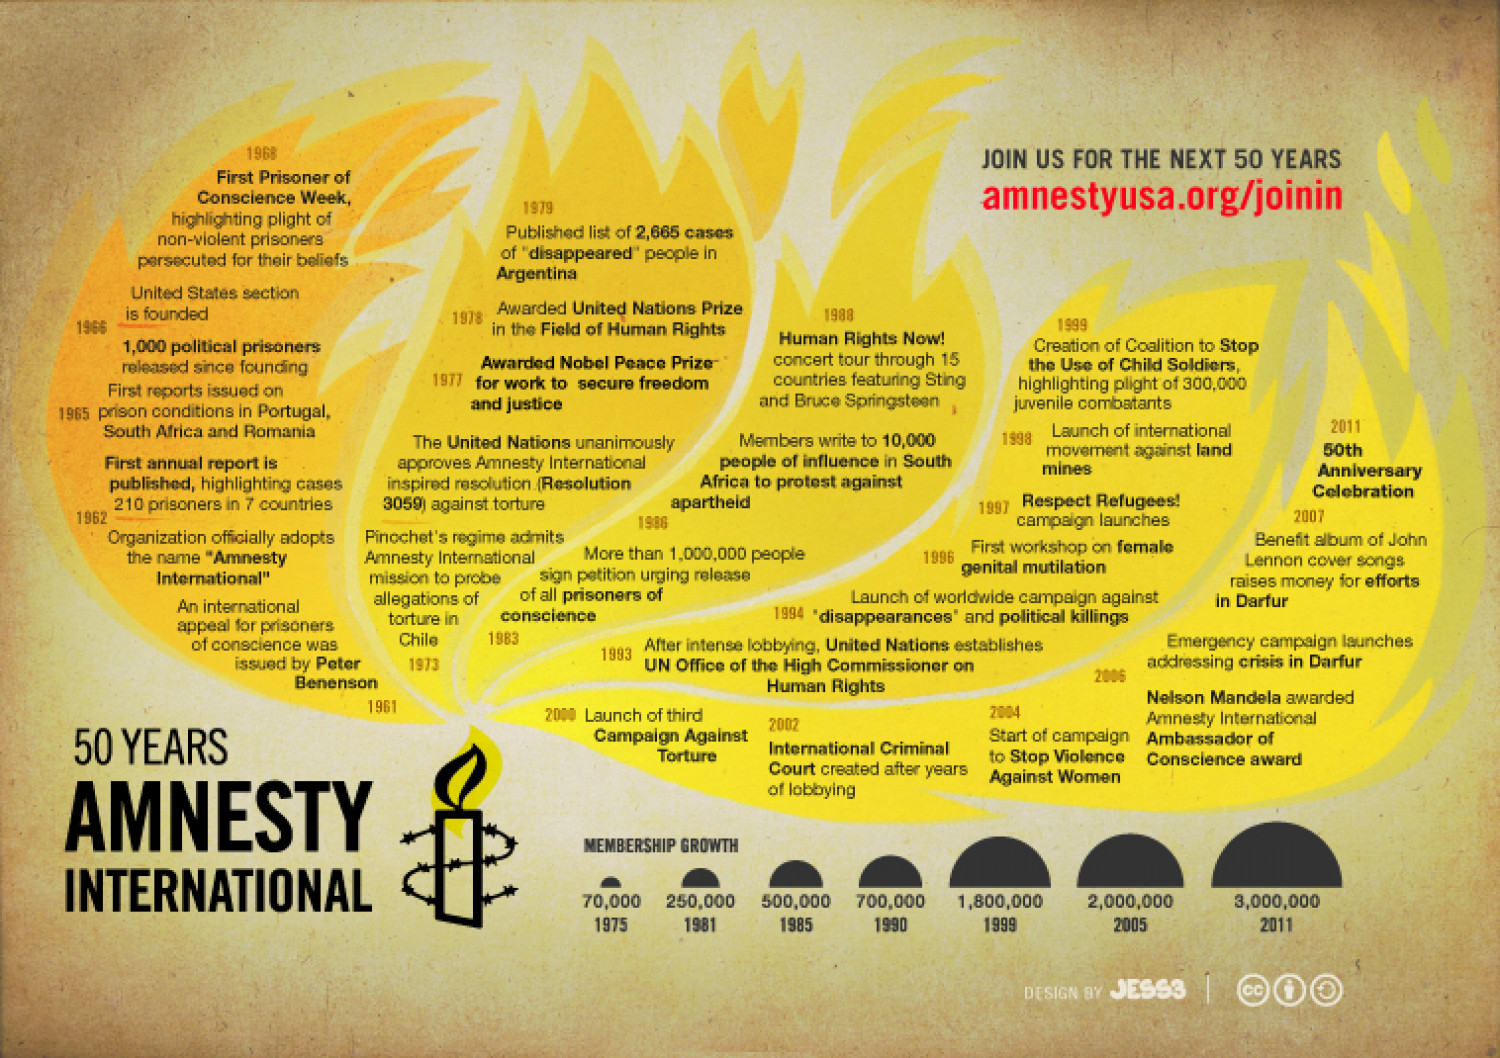 50 Years Amnesty International Infographic